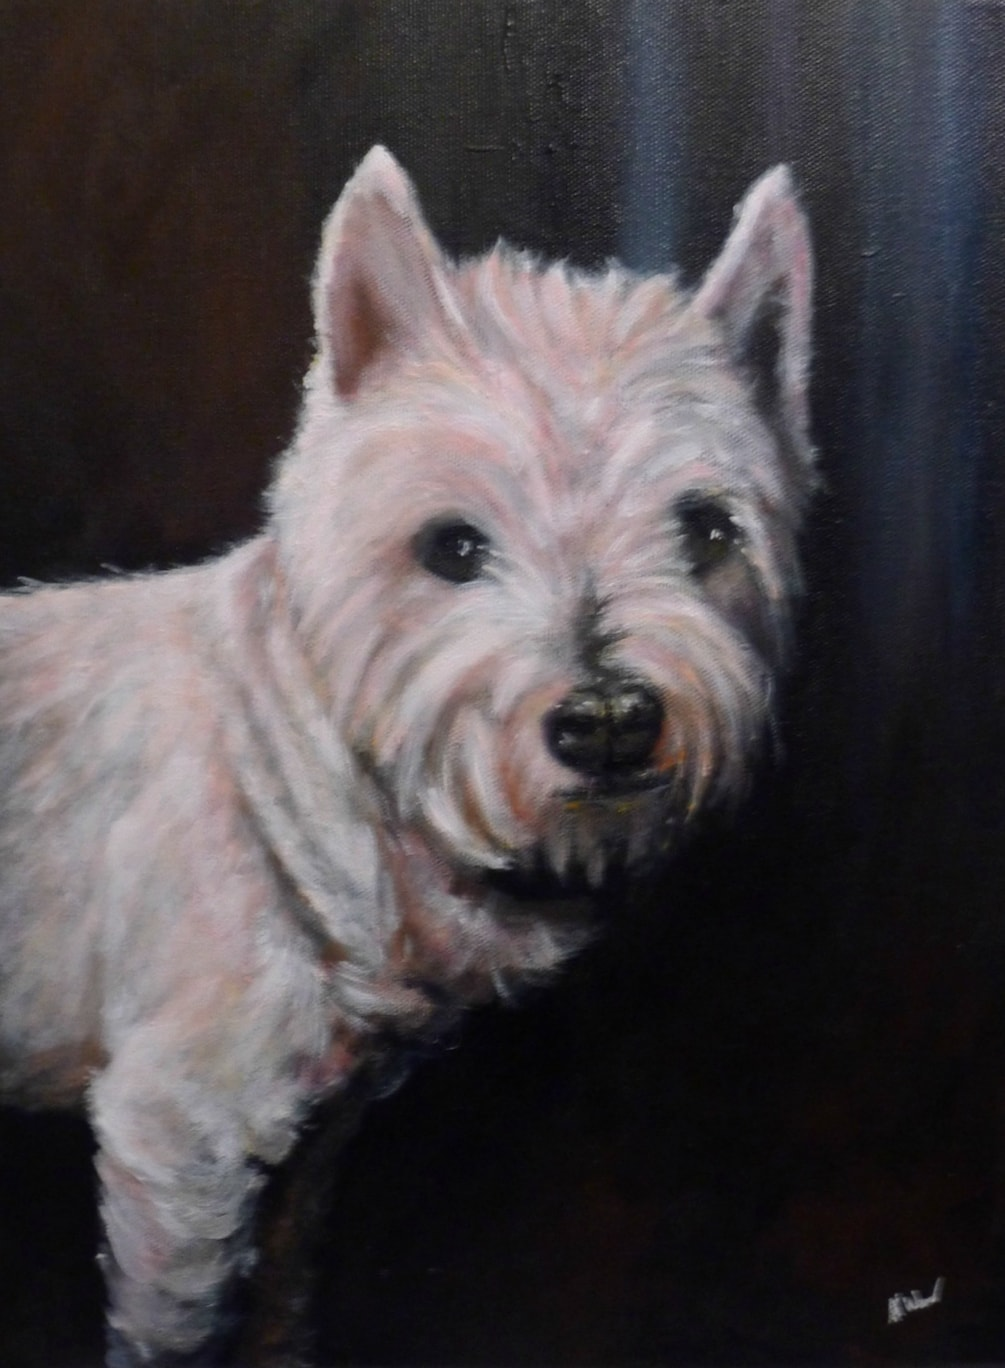 Frankie - Acrylic on Canvas - Commissioned Portrait